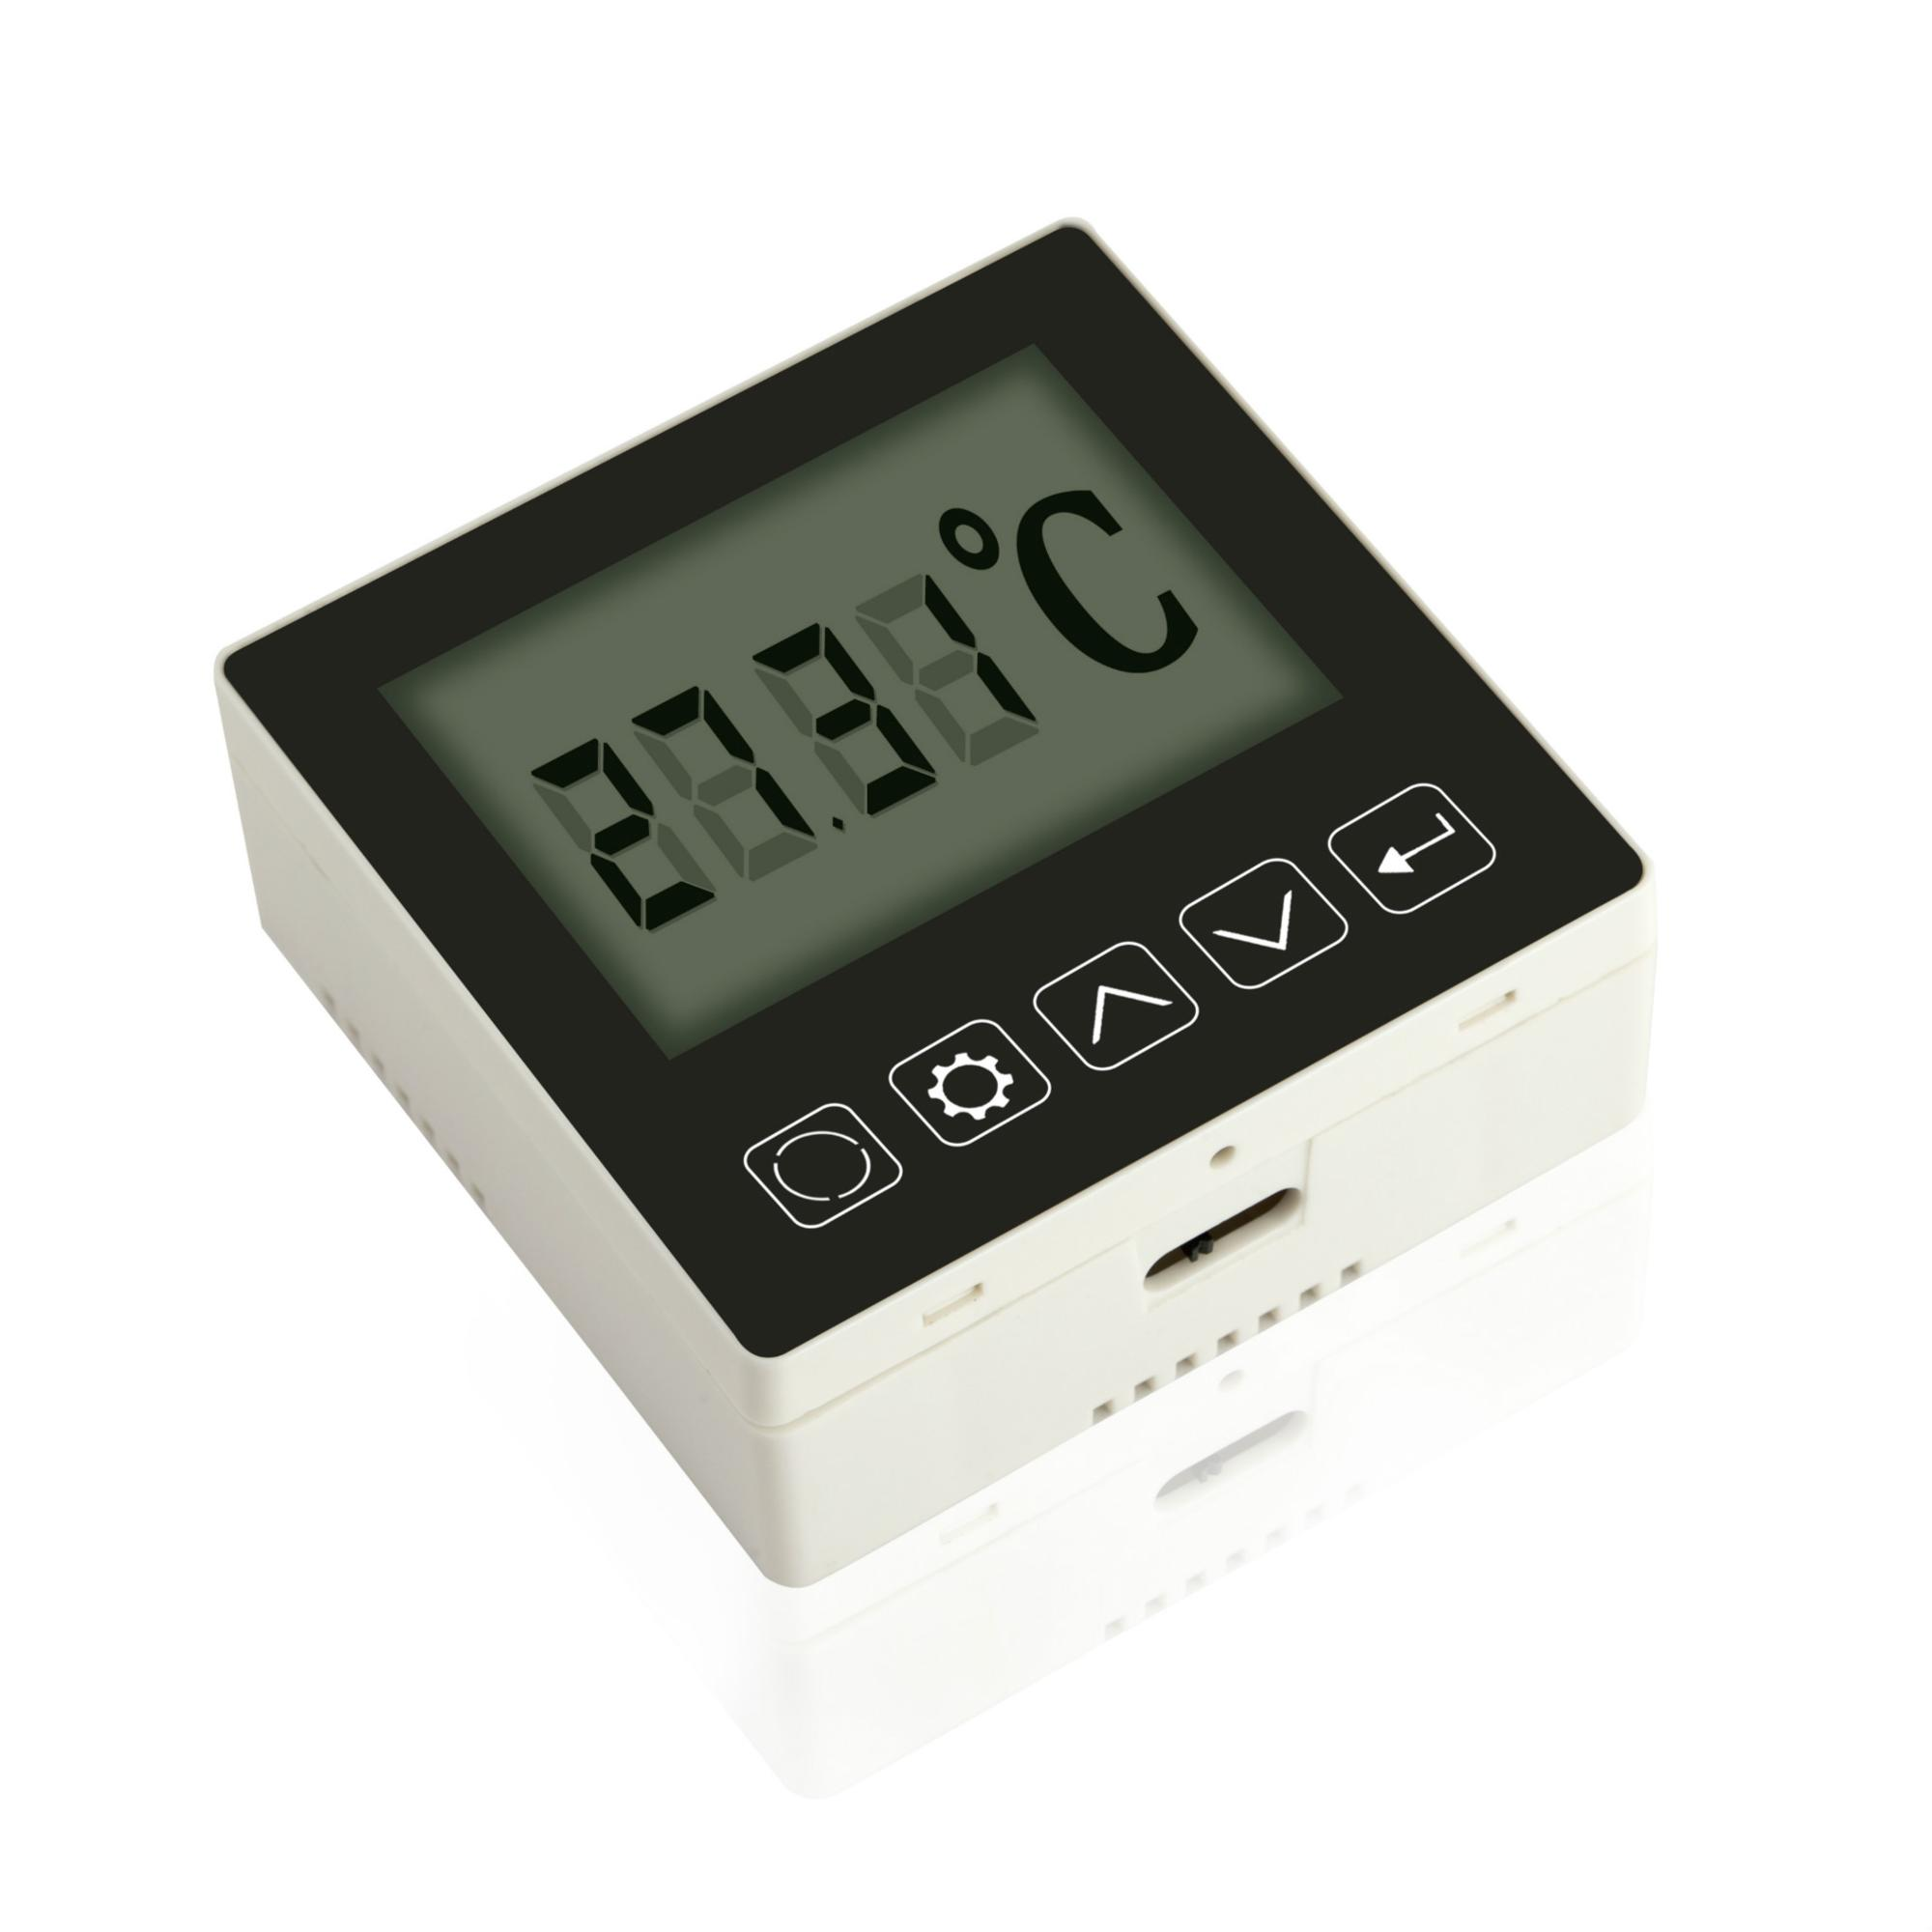 H3d5a11ce6d25415fb2fdd05cc1e1bd85i - NB-IOT Verified Internet of Things Device Water Tank Level Sensor